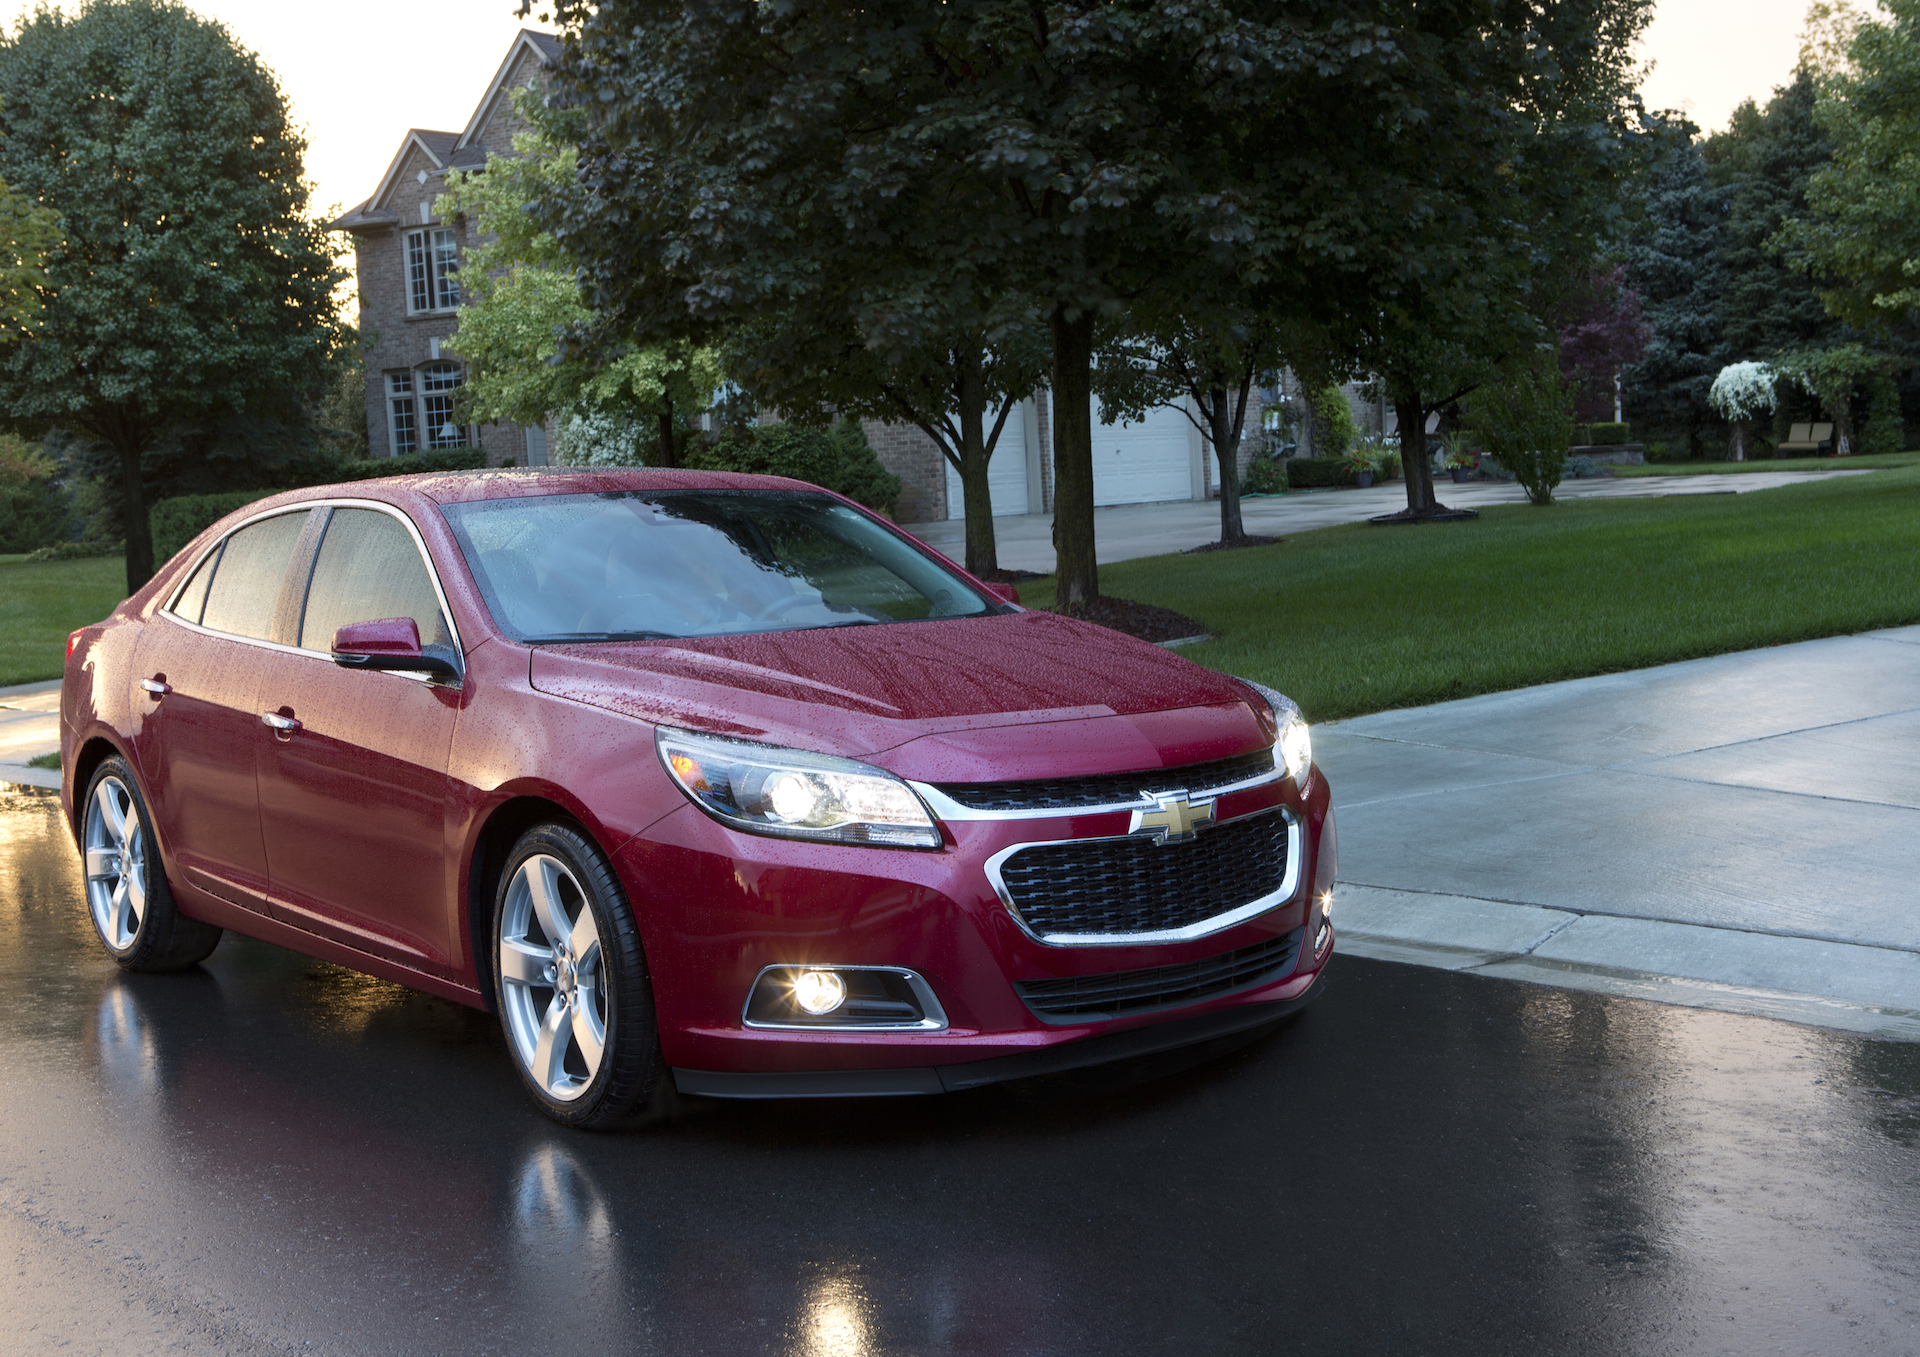 2015 Chevrolet Malibu Chevy Review Ratings Specs